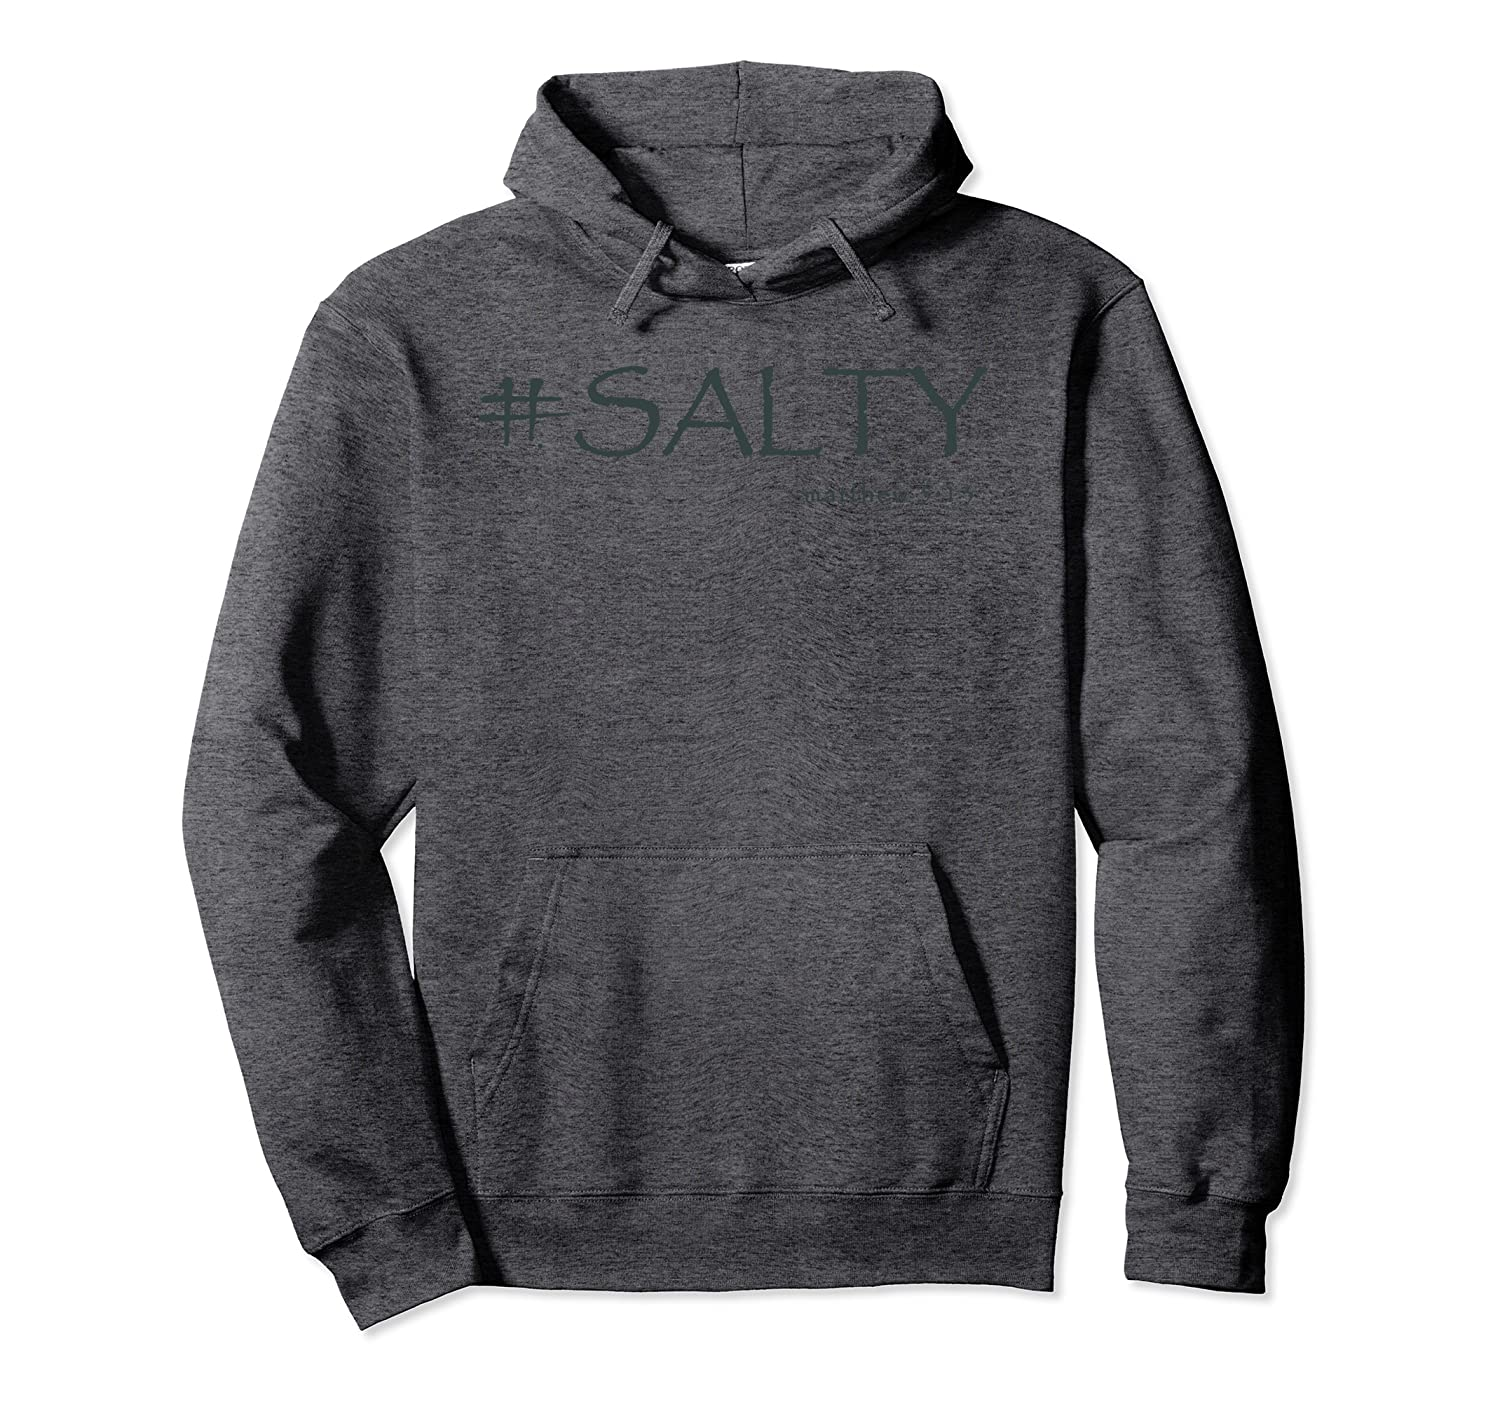 """#Salty Jacket: Matthew 5:13 """"You are the Salt of the Earth"""" Pullover Hoodie"""